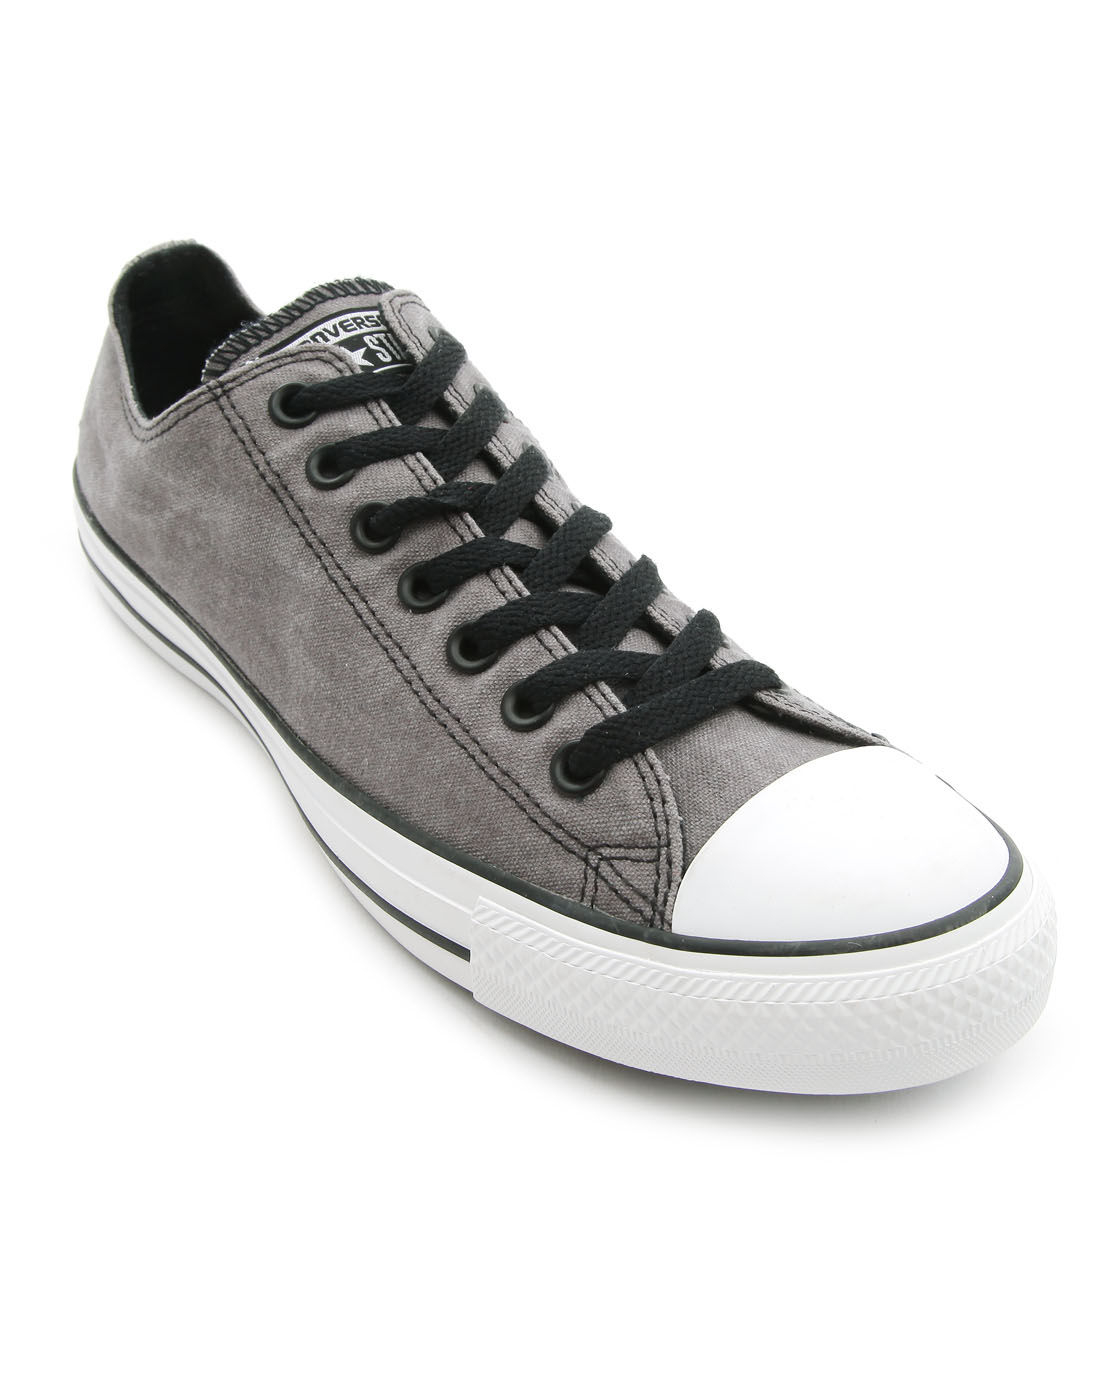 Converse All Star Low Vintage Dark Grey Sneakers in Gray . 603d0a0e6